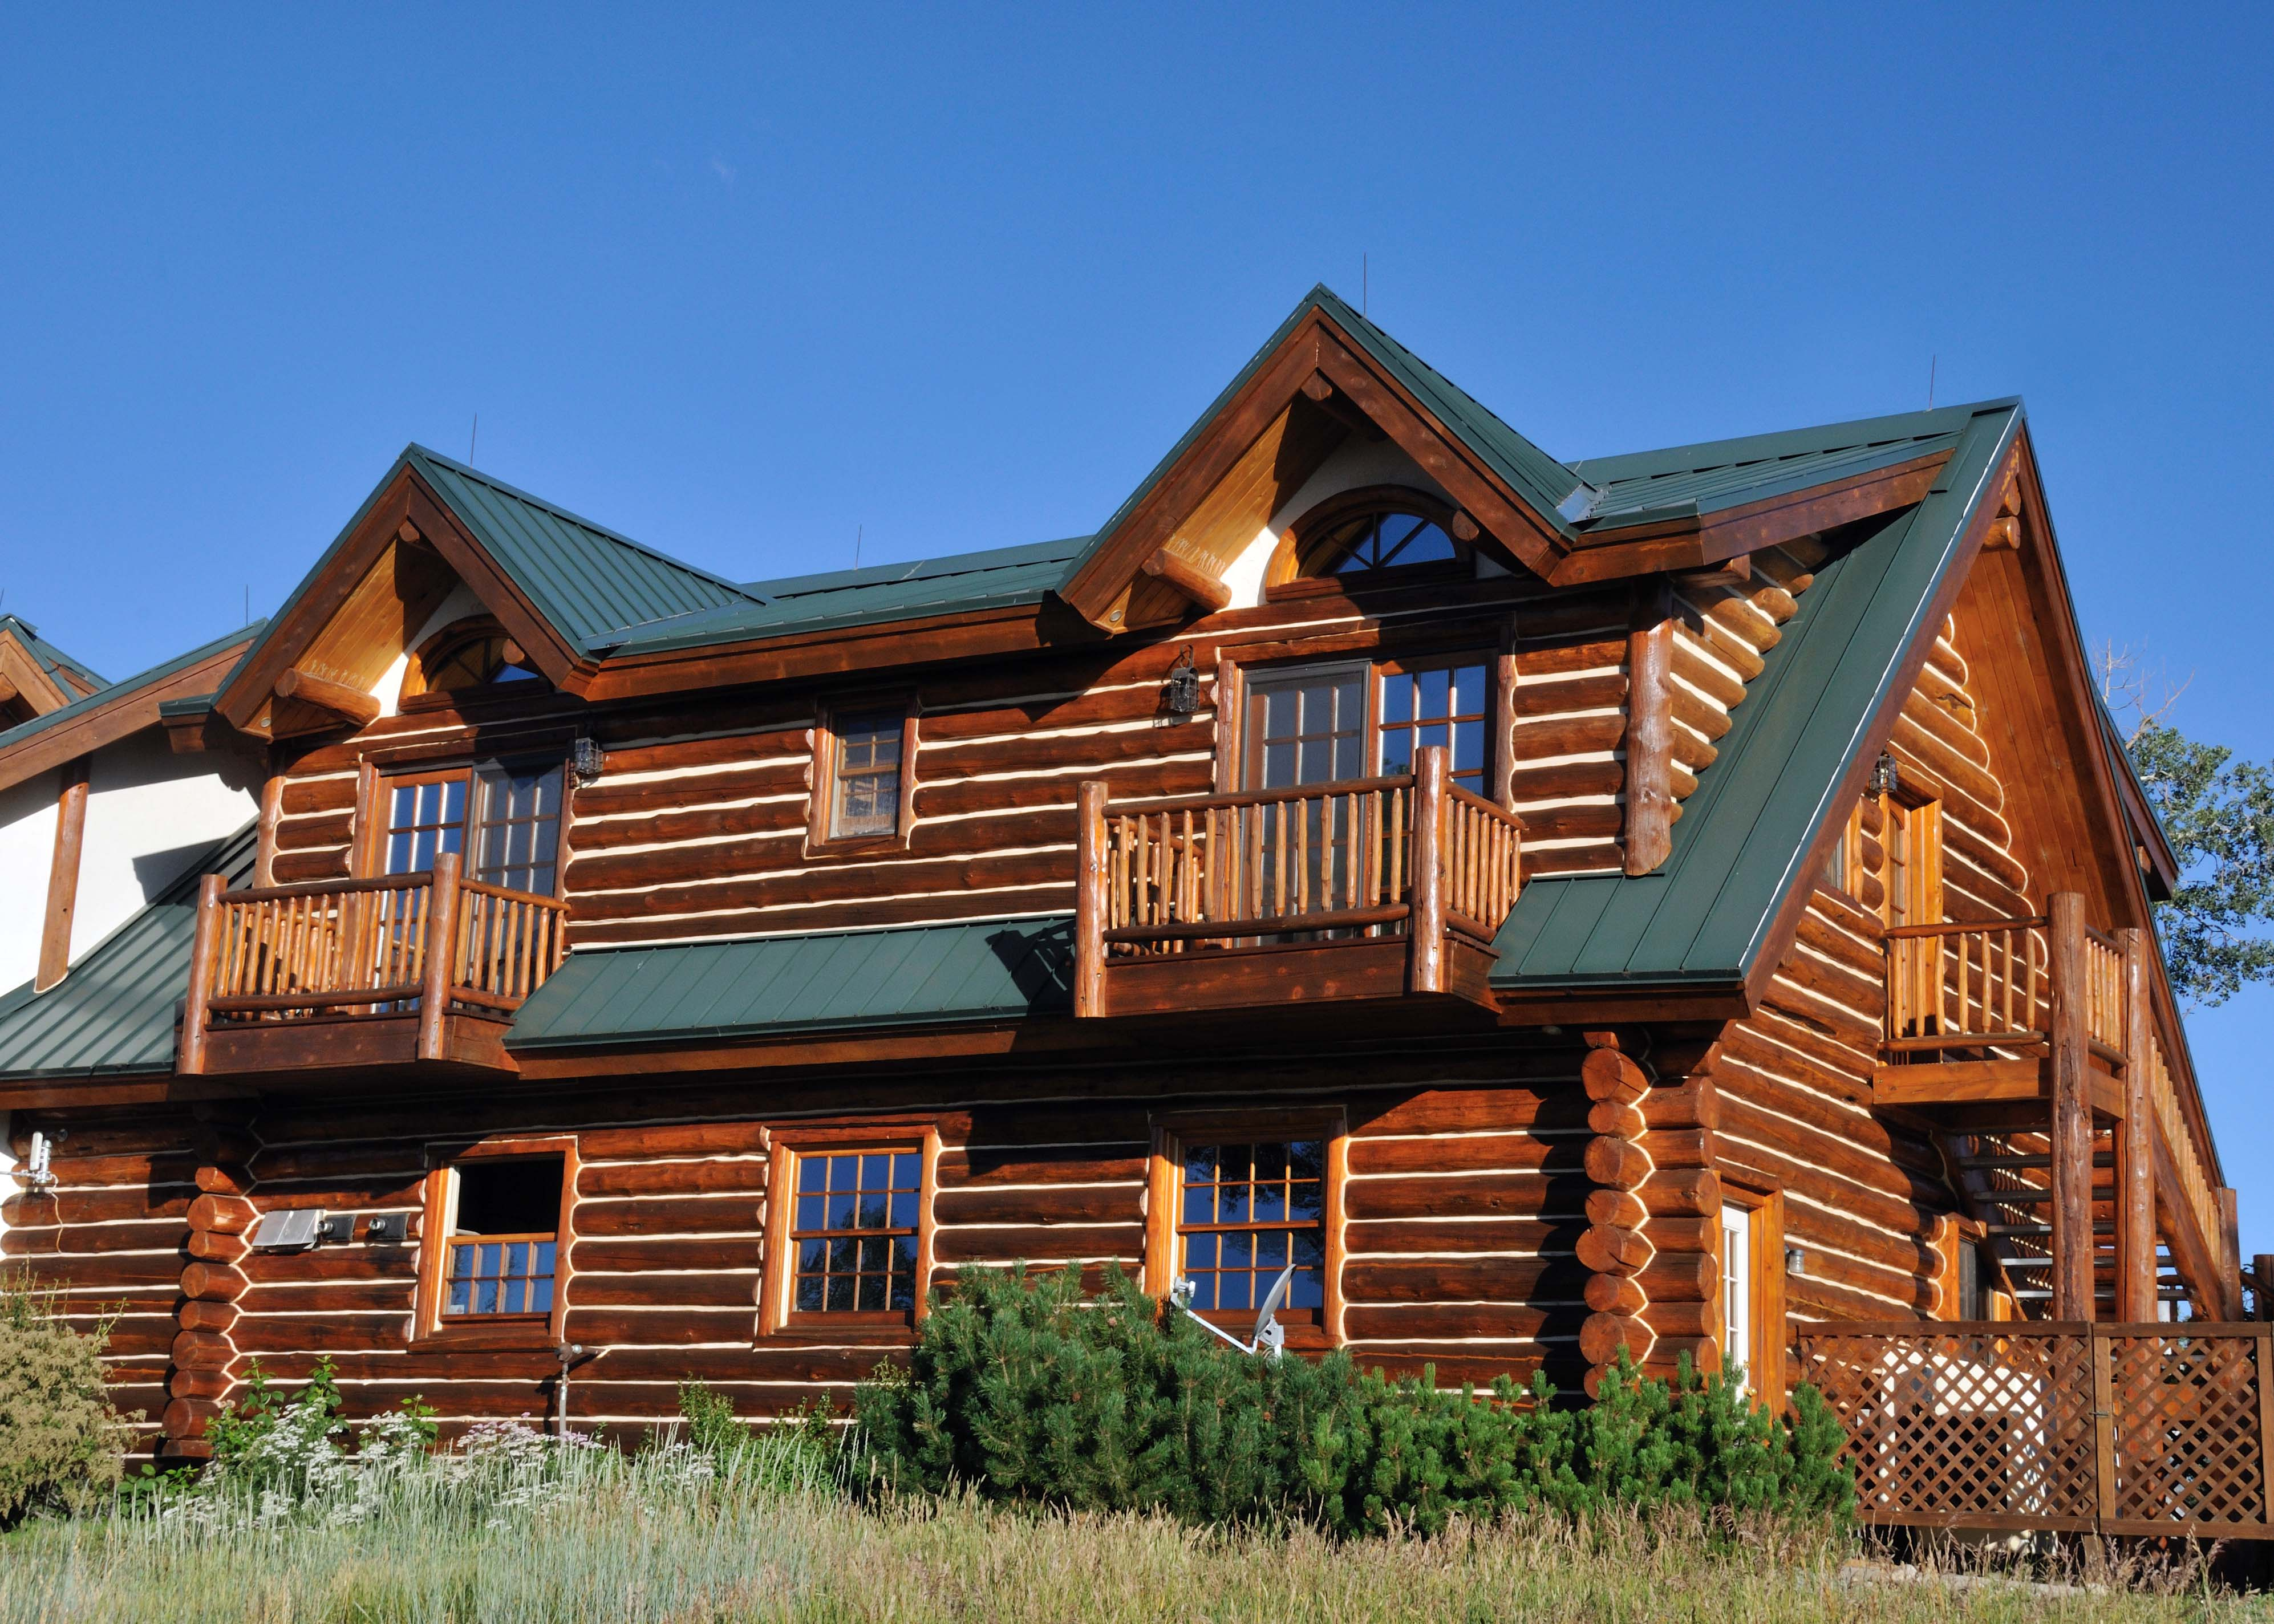 Red dog ranch telluride colorado real estate for Telluride houses for sale